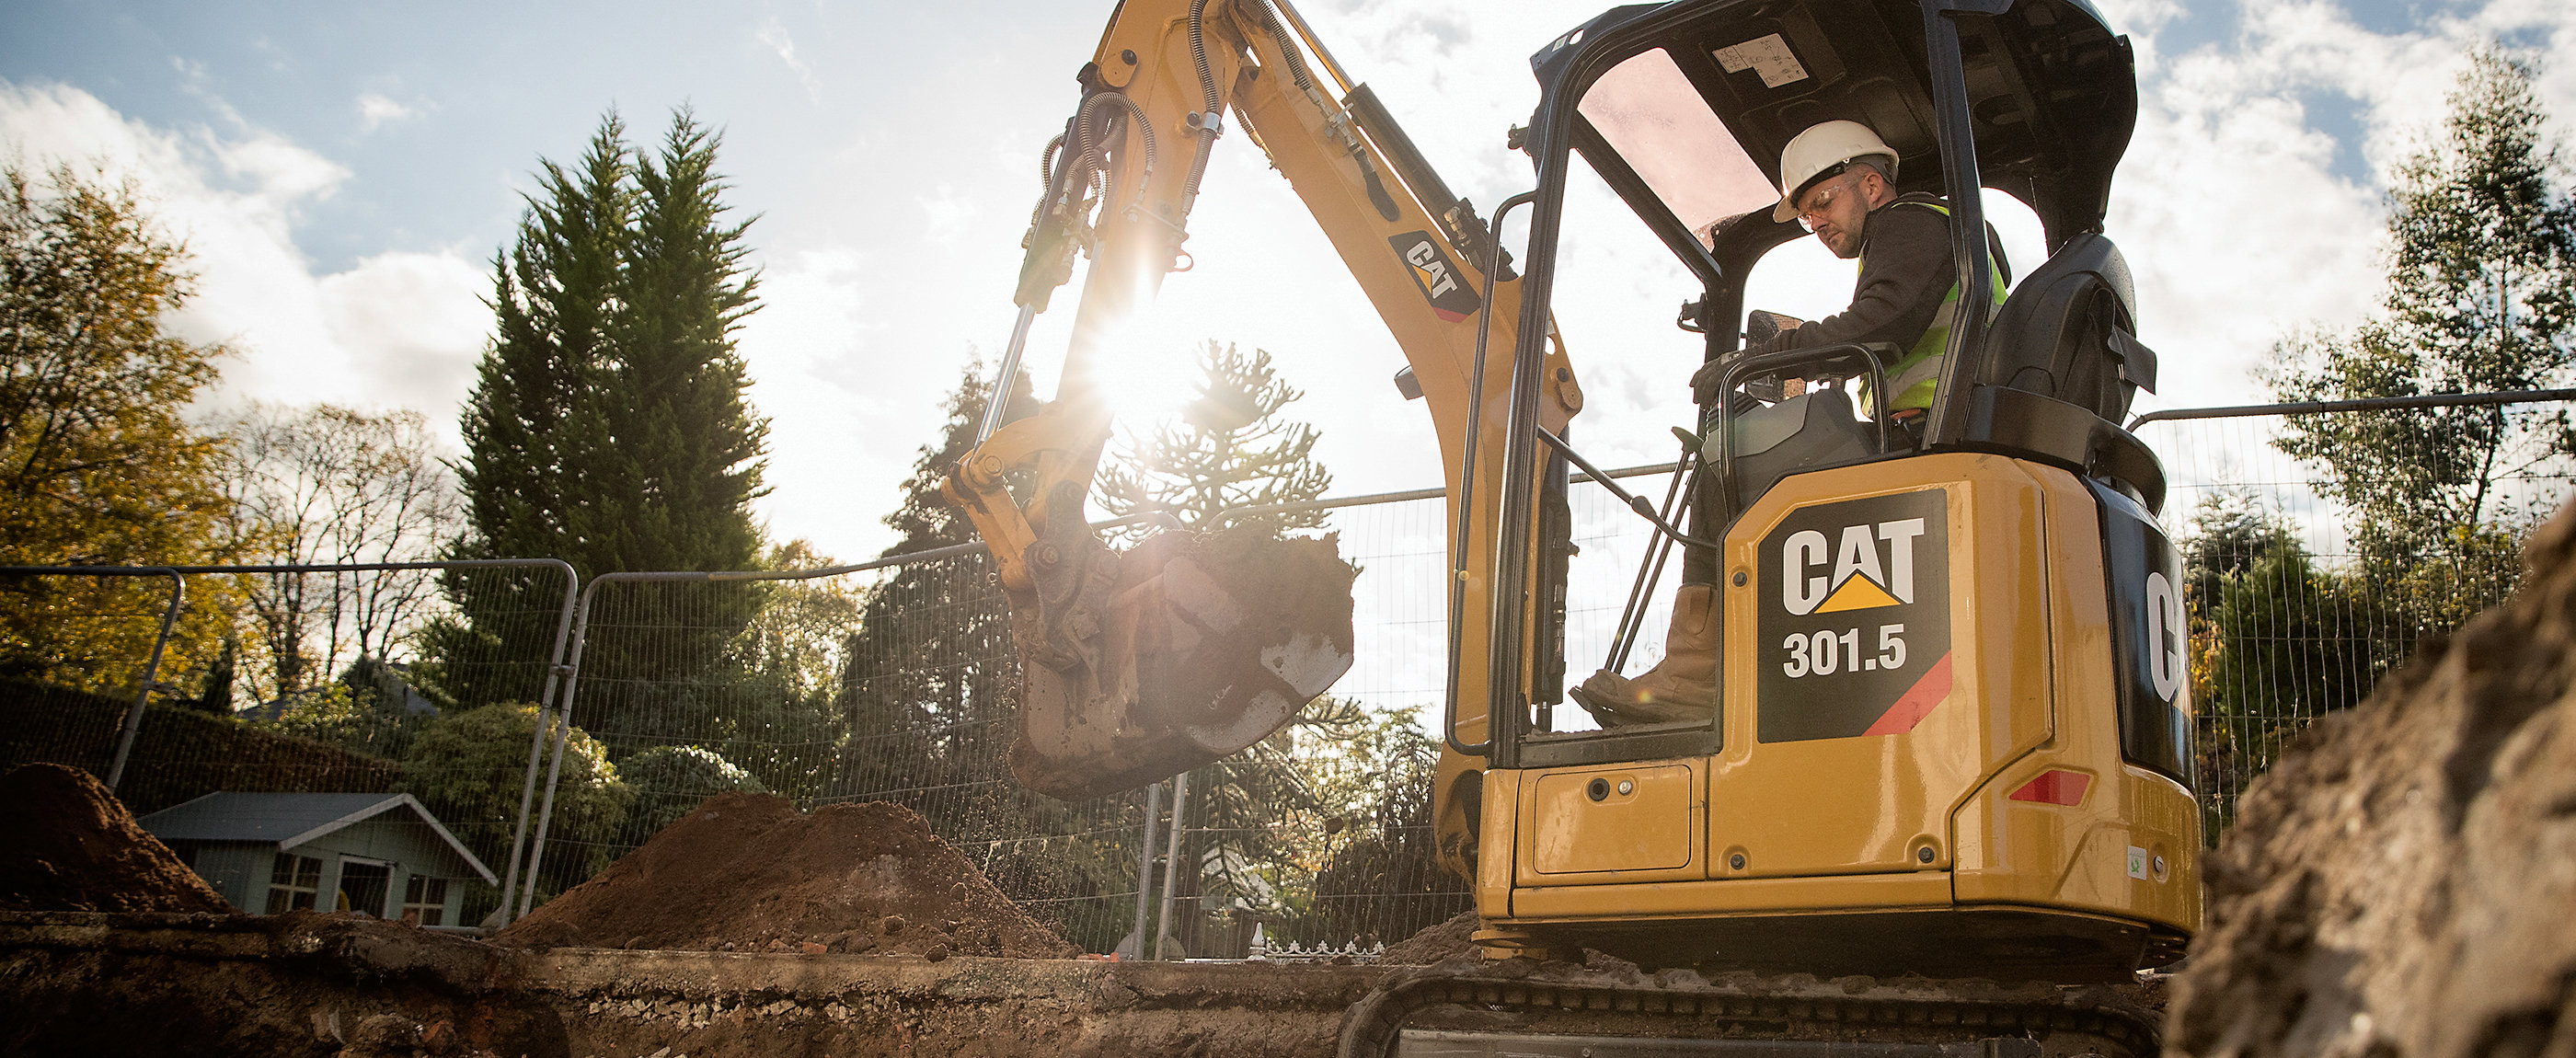 Cat®️ Next Generation Mini Excavators bring big machine features standard across all models